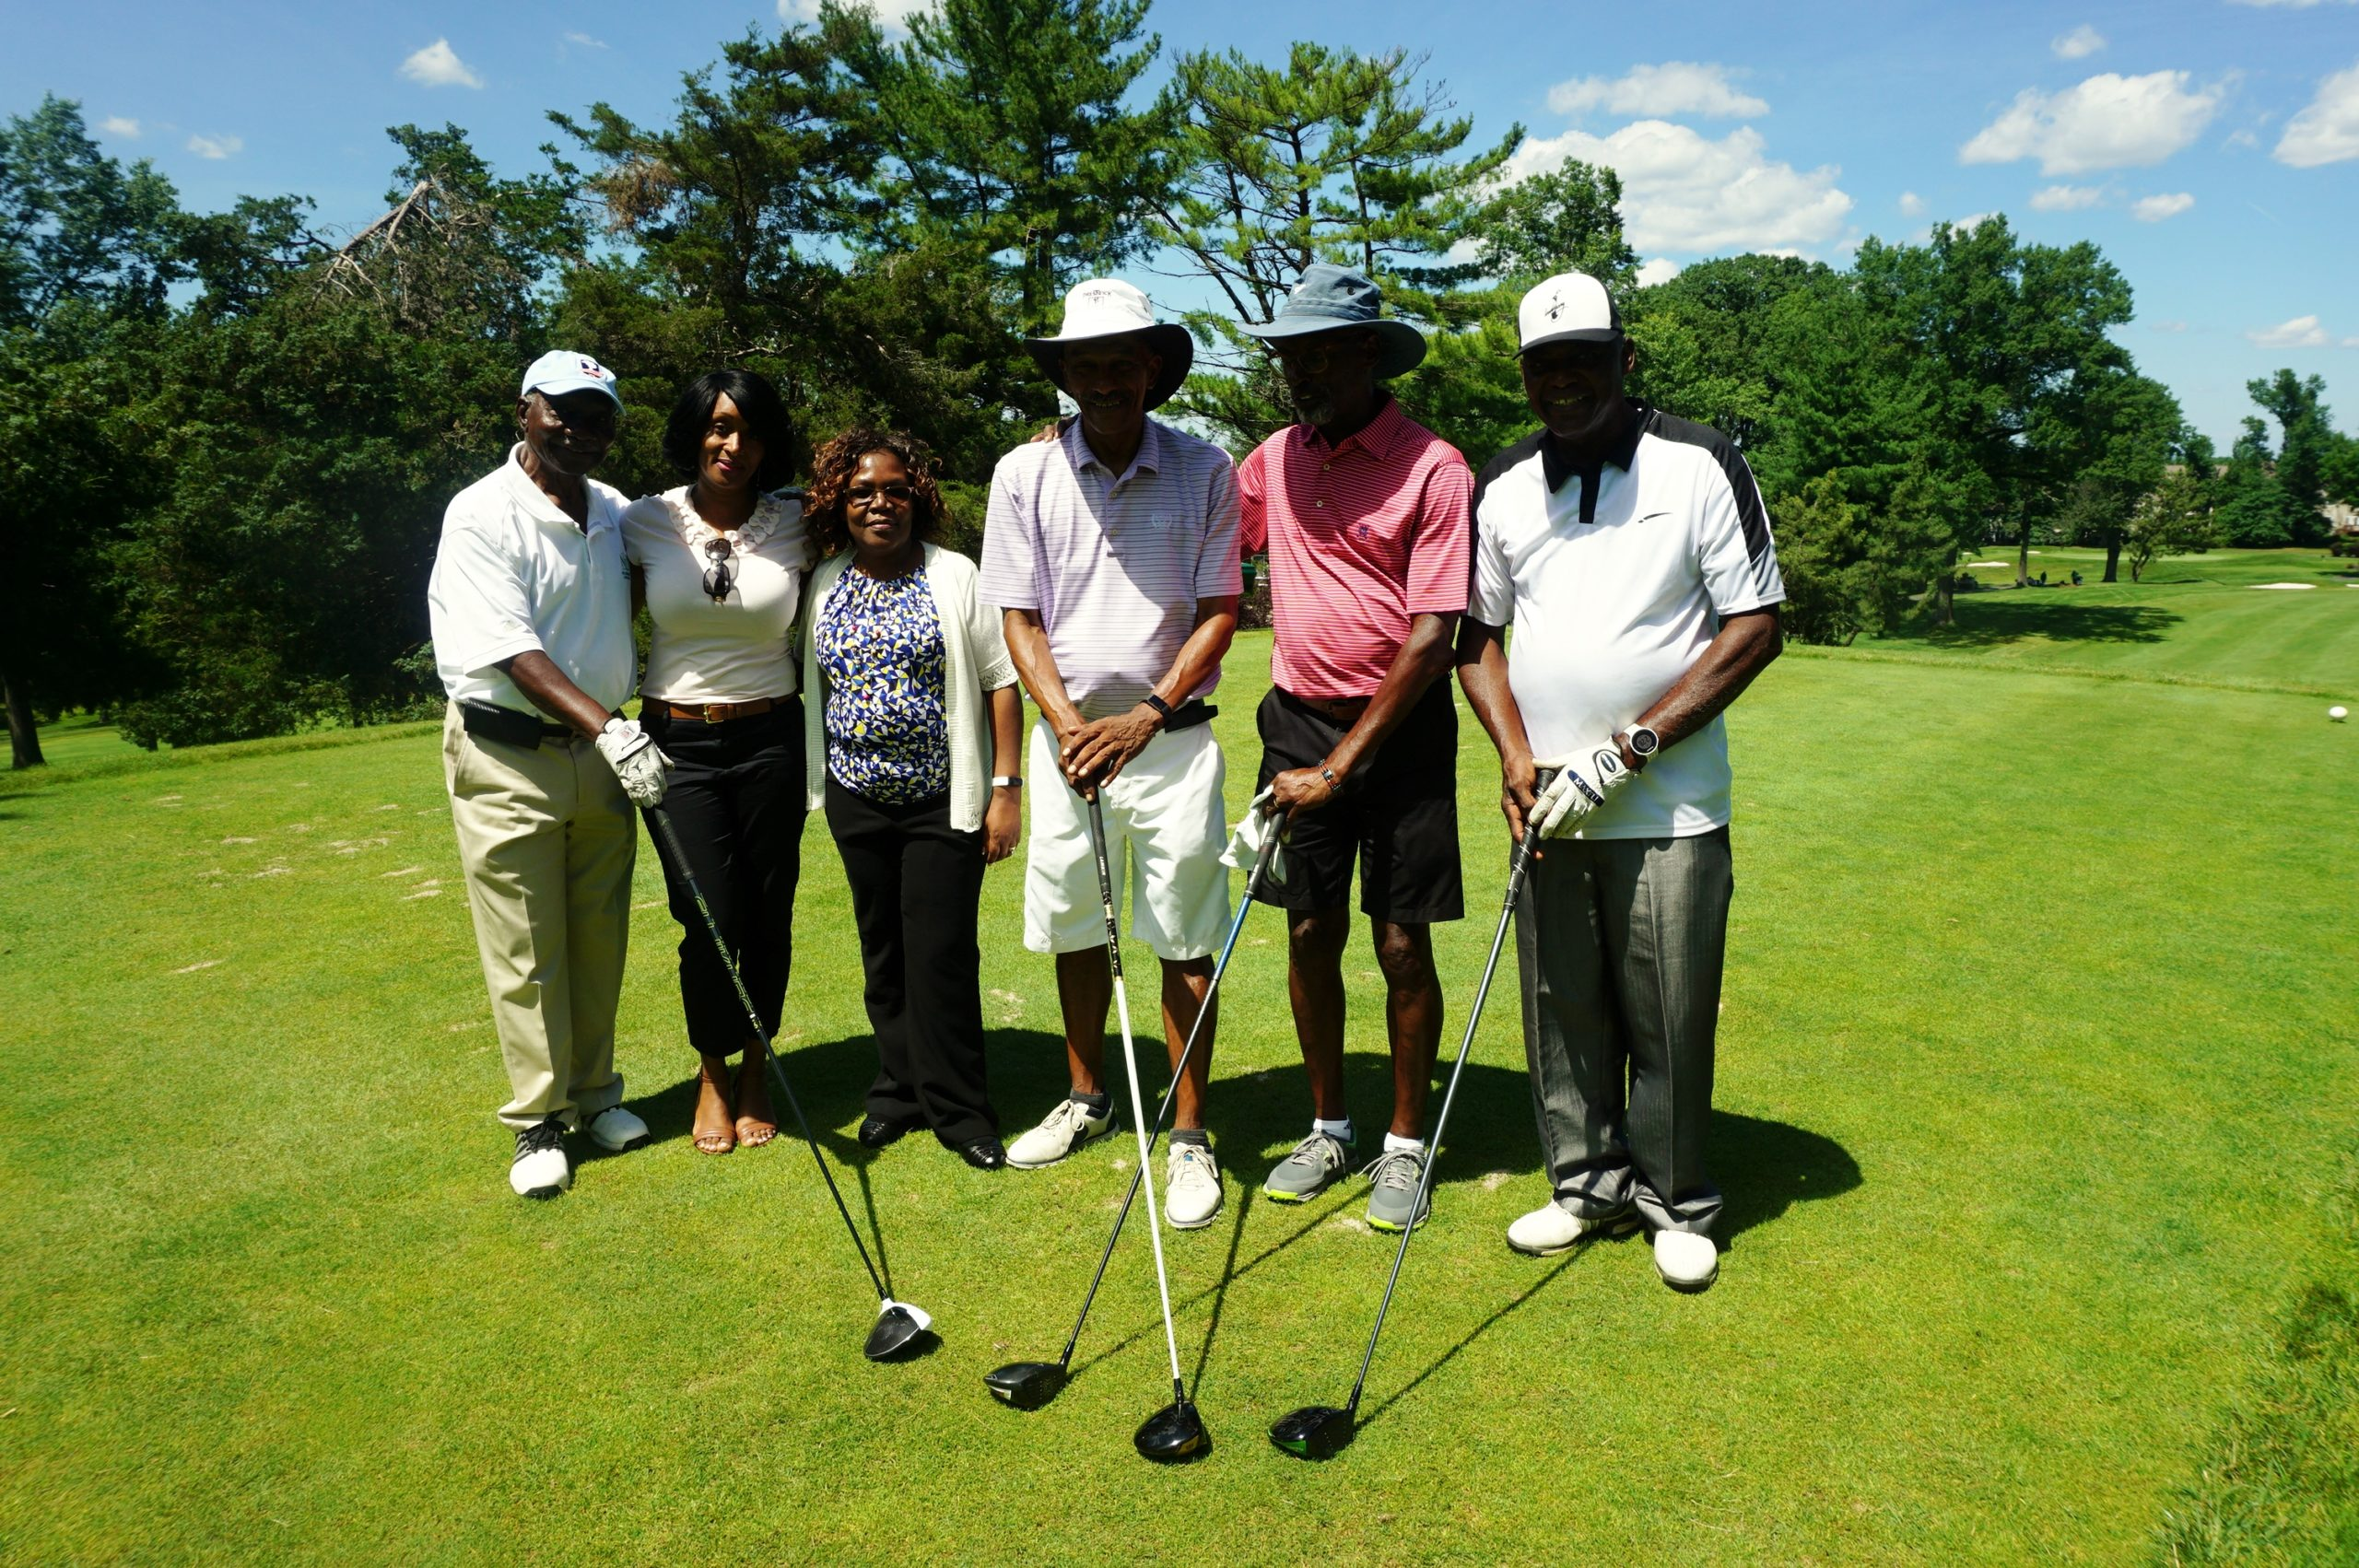 New Community Hosts 25th Annual Golf Classic